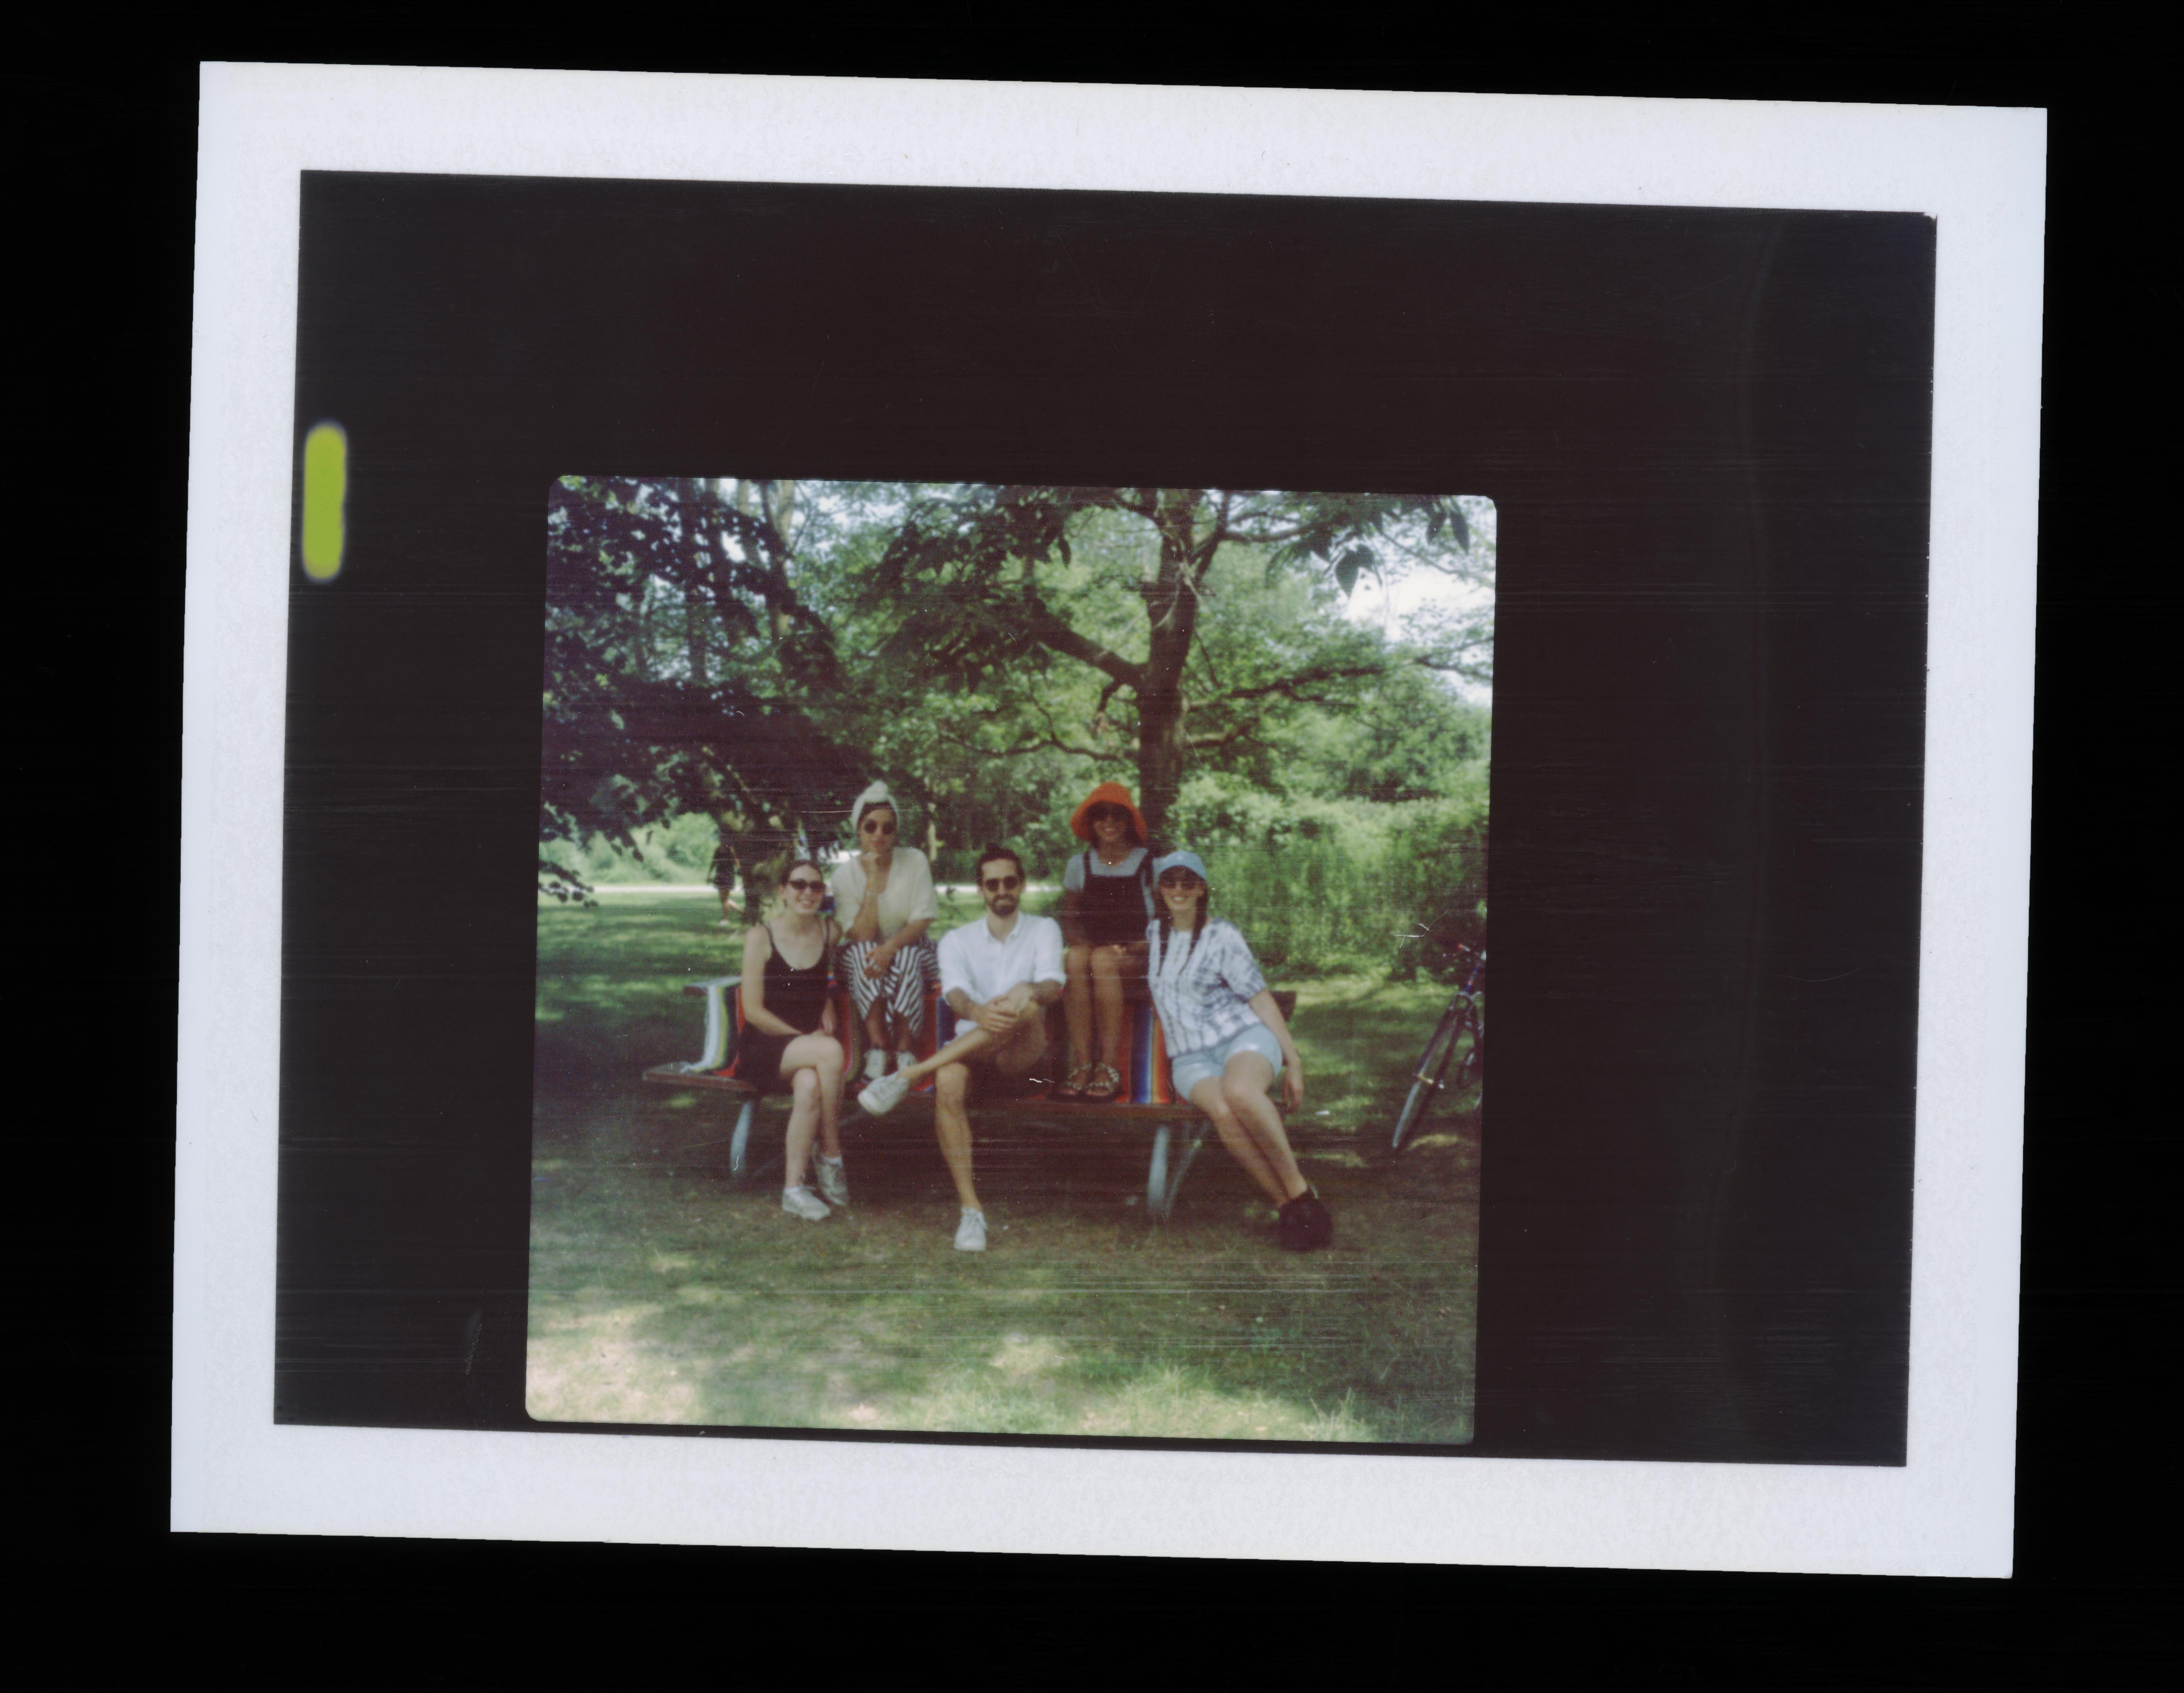 A instant film image of G44 staff sitting on a picnic table.